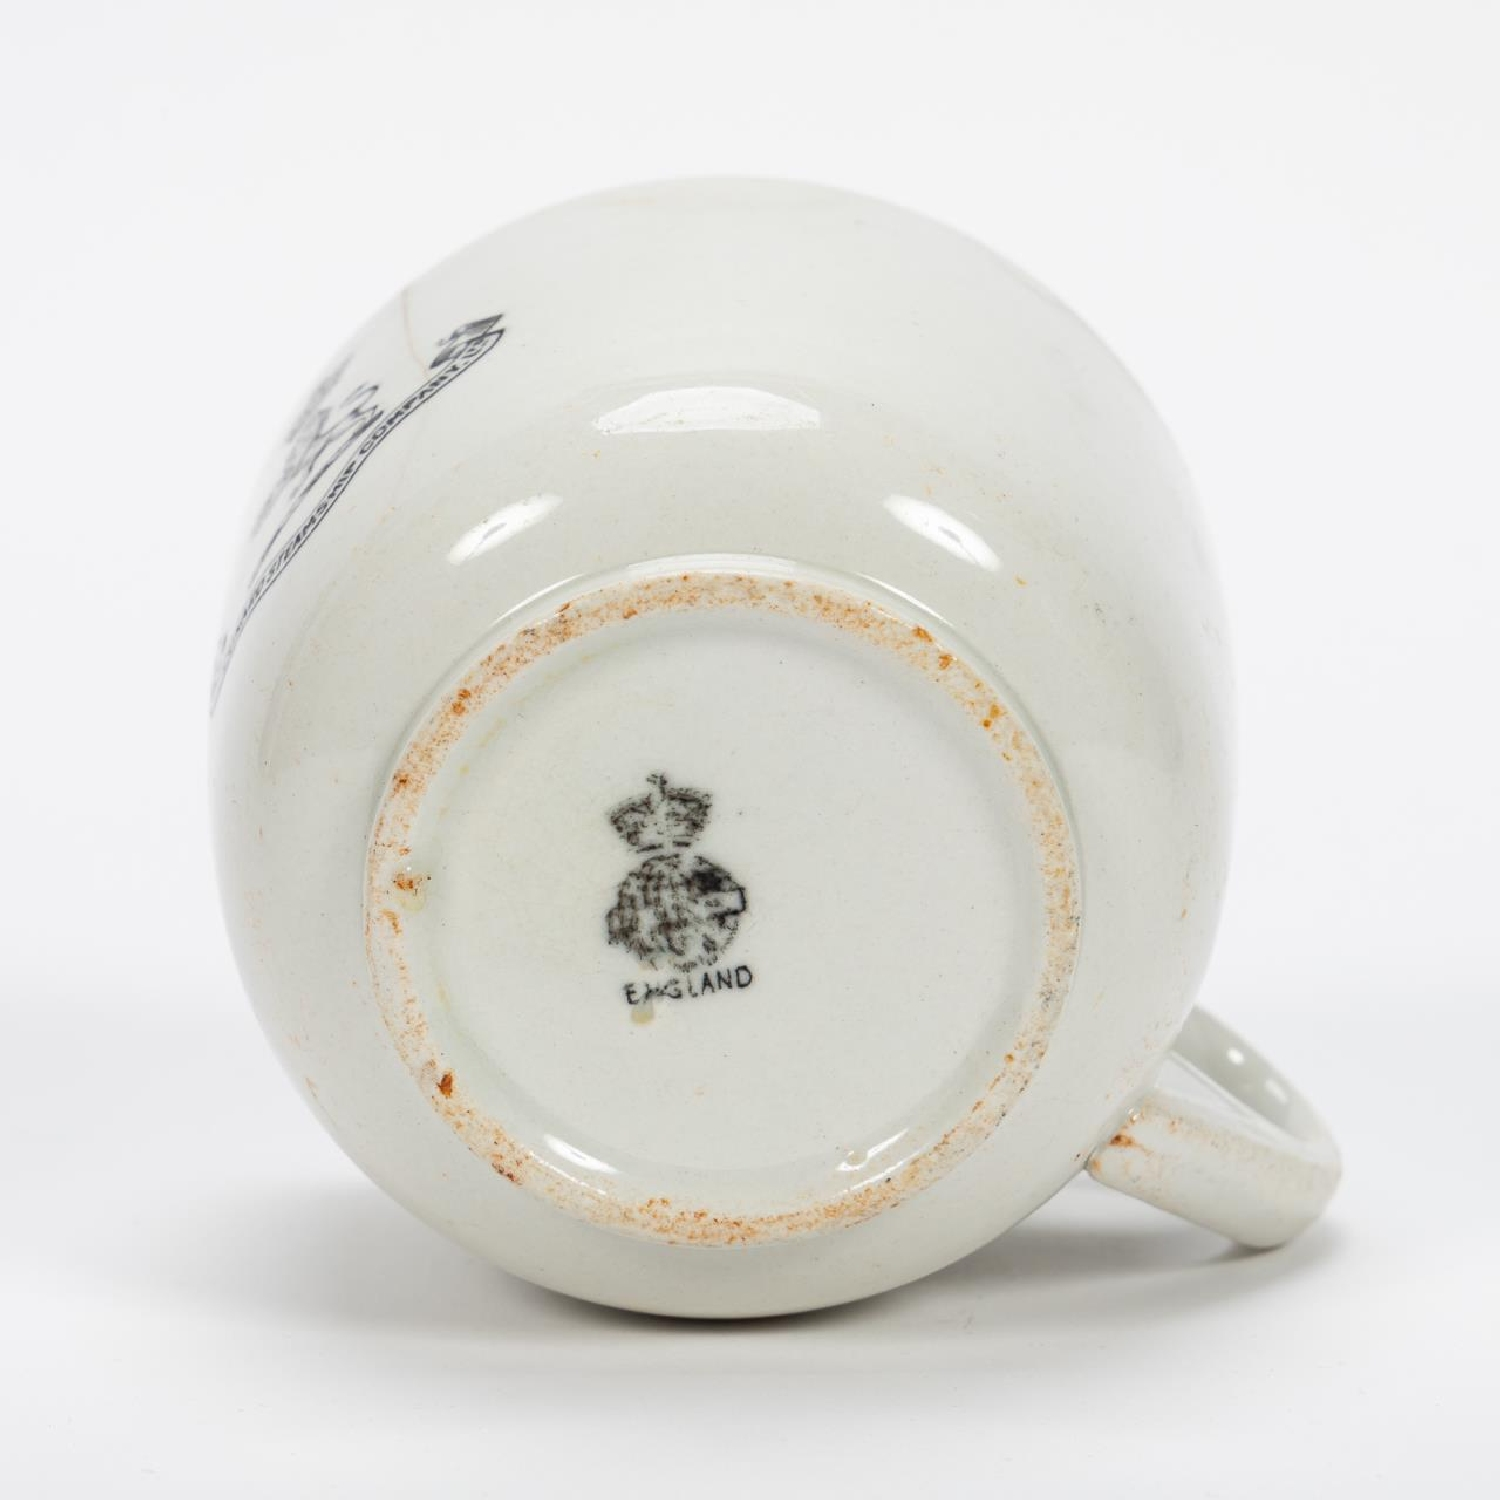 RMS CARPATHIA, SALVAGED THIRD CLASS CUP WITH LOGO - Image 7 of 9